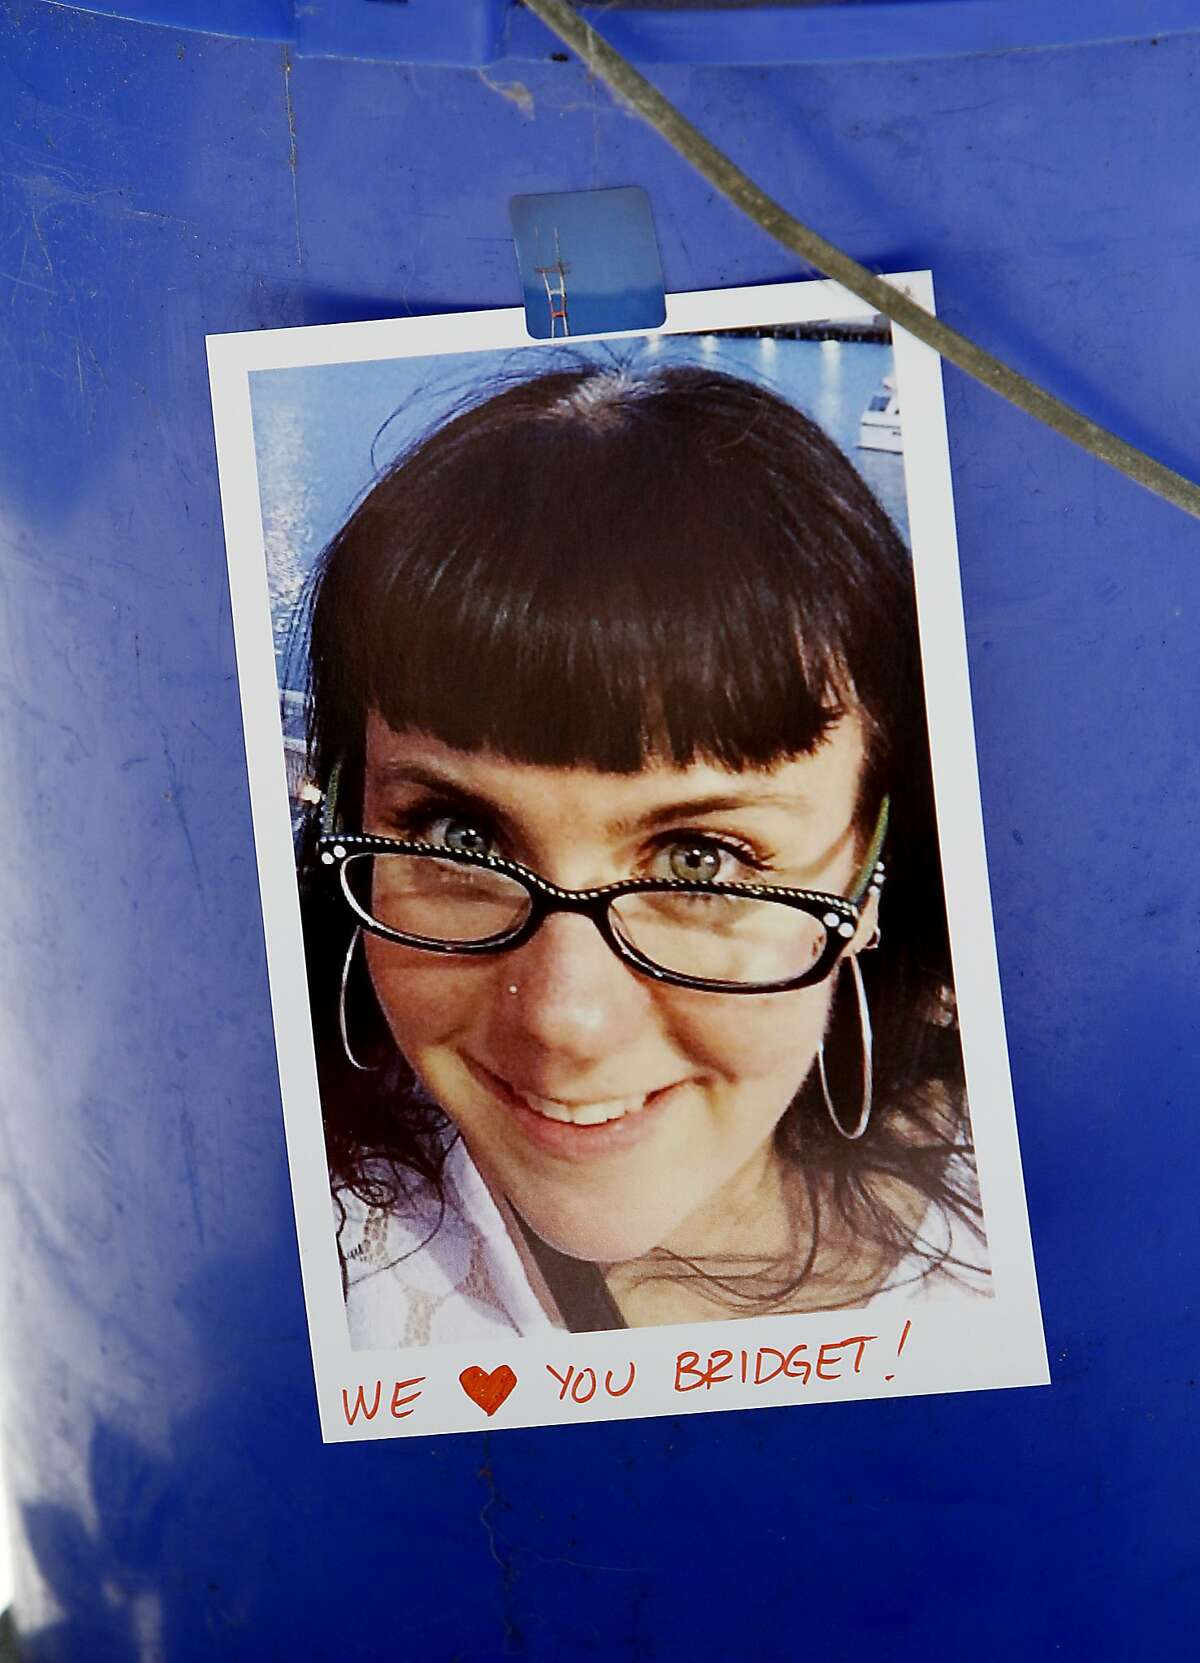 A photo of Bridget Klecker, who was hit and killed by fleeing armed robbers Friday night, at her memorial in San Francisco, Calif., on Sunday, April 12, 2015.